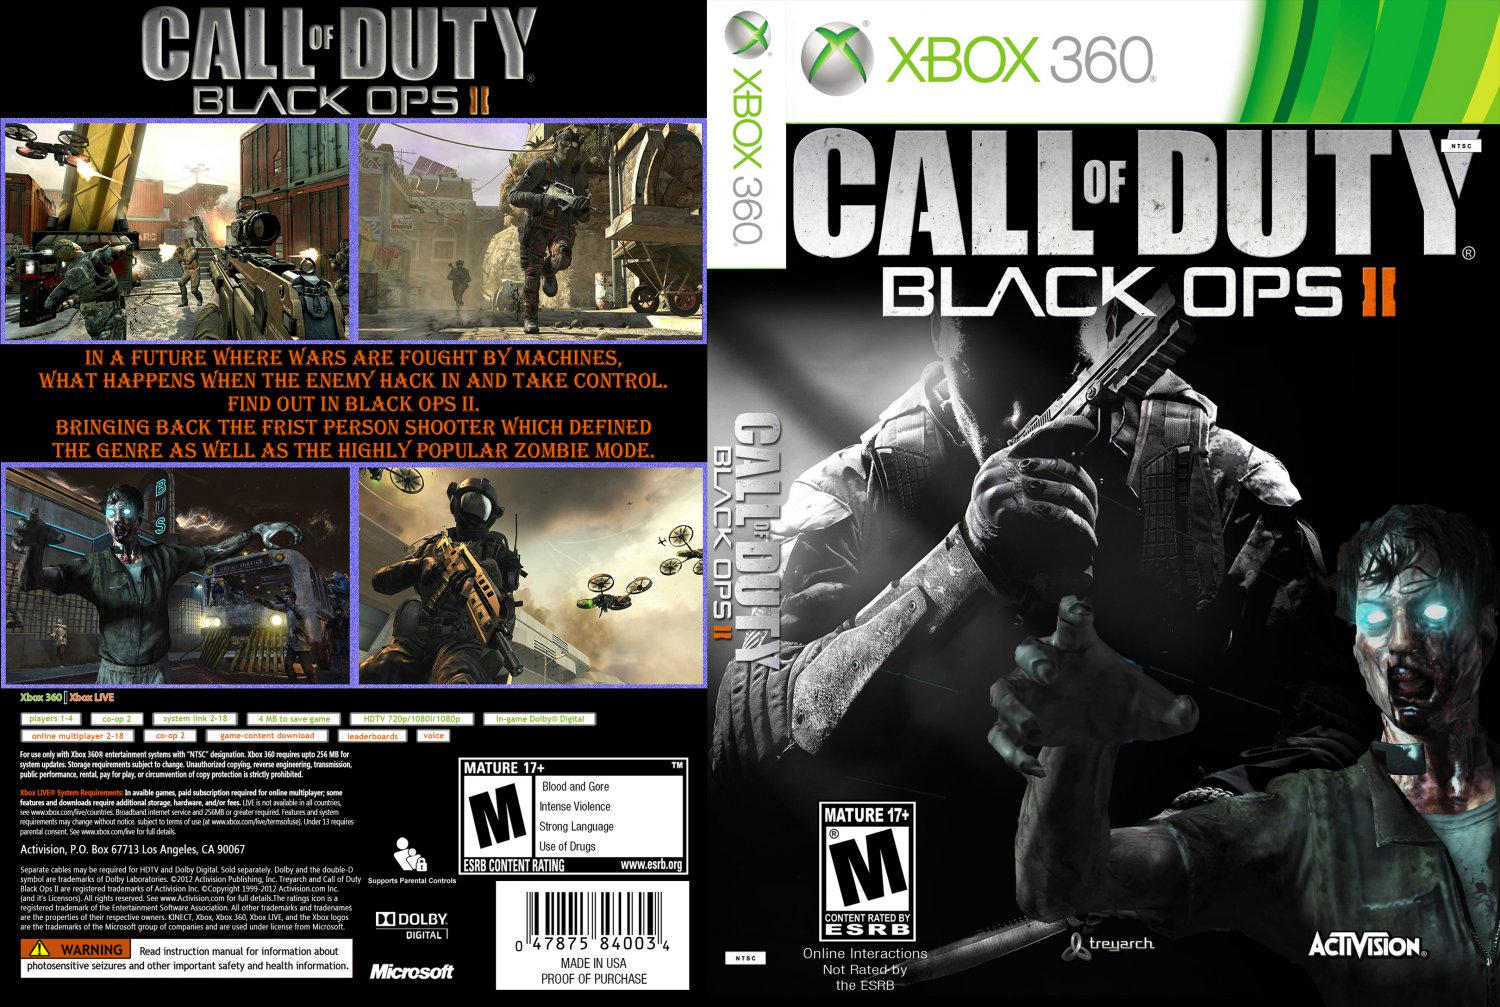 call of duty black ops ii xbox 360 game covers call. Black Bedroom Furniture Sets. Home Design Ideas